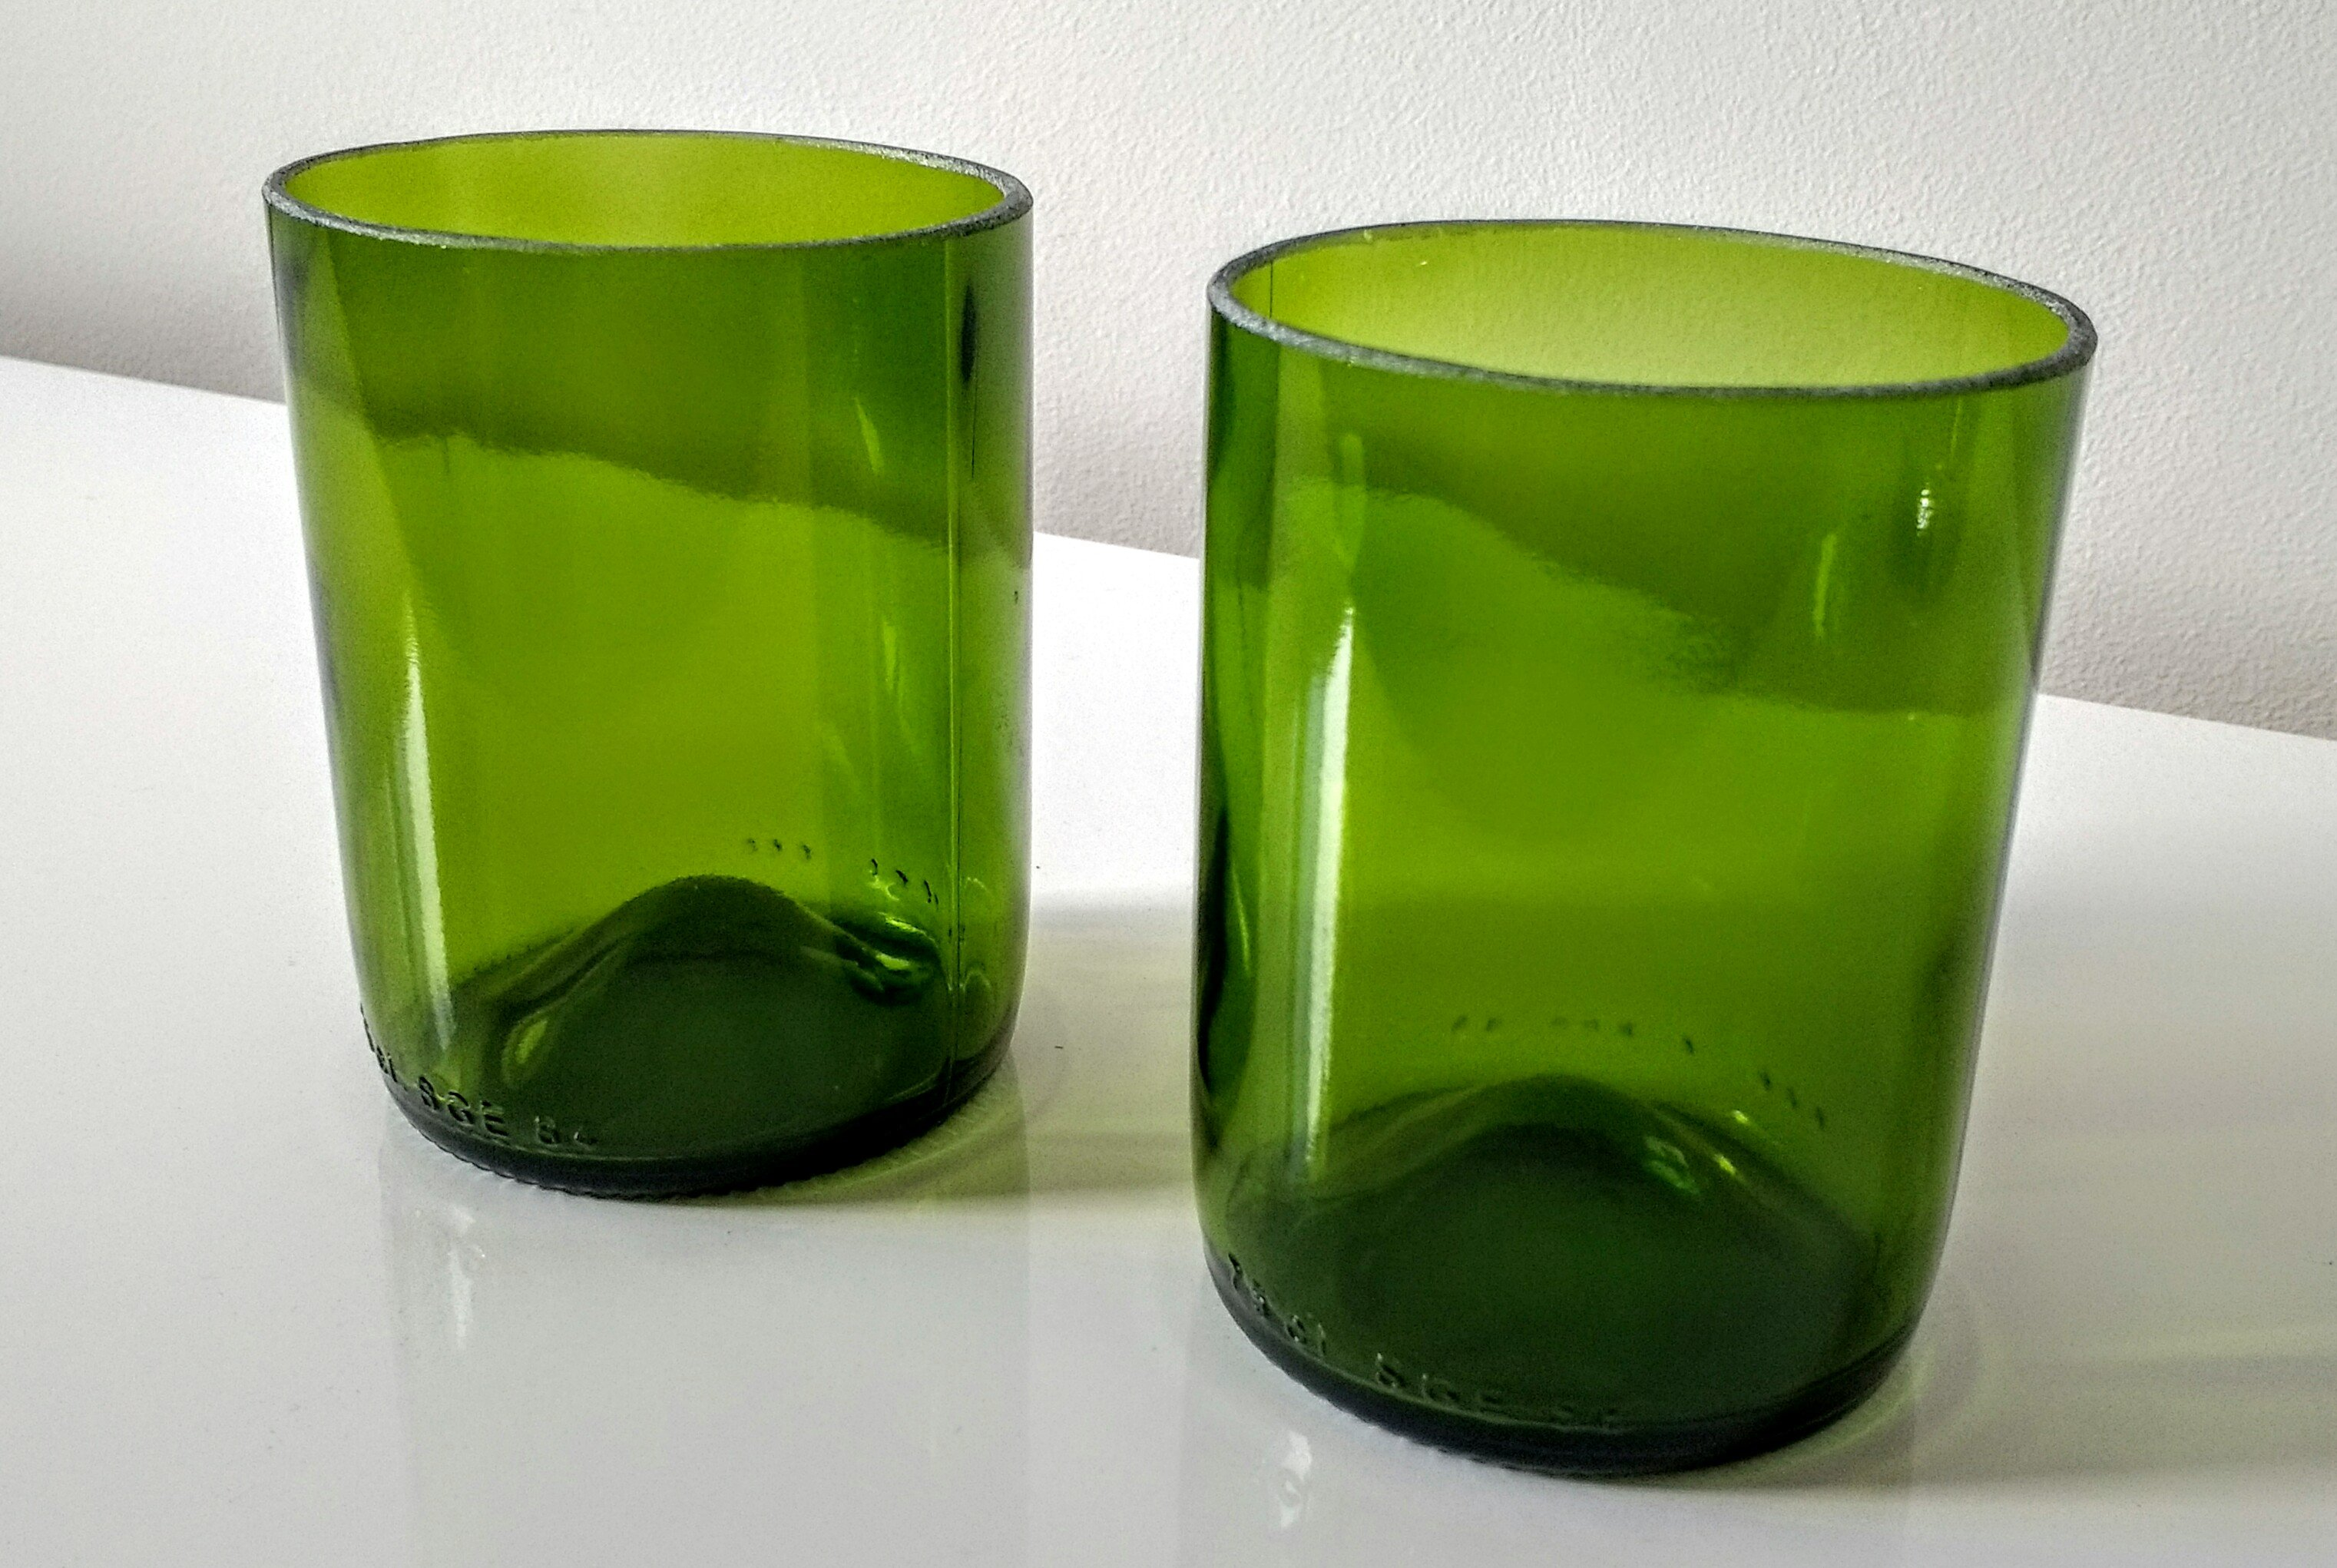 wine bottle glasses, upcycled wine bpottles, upcycled glass, glass tumblers, handmade glasses